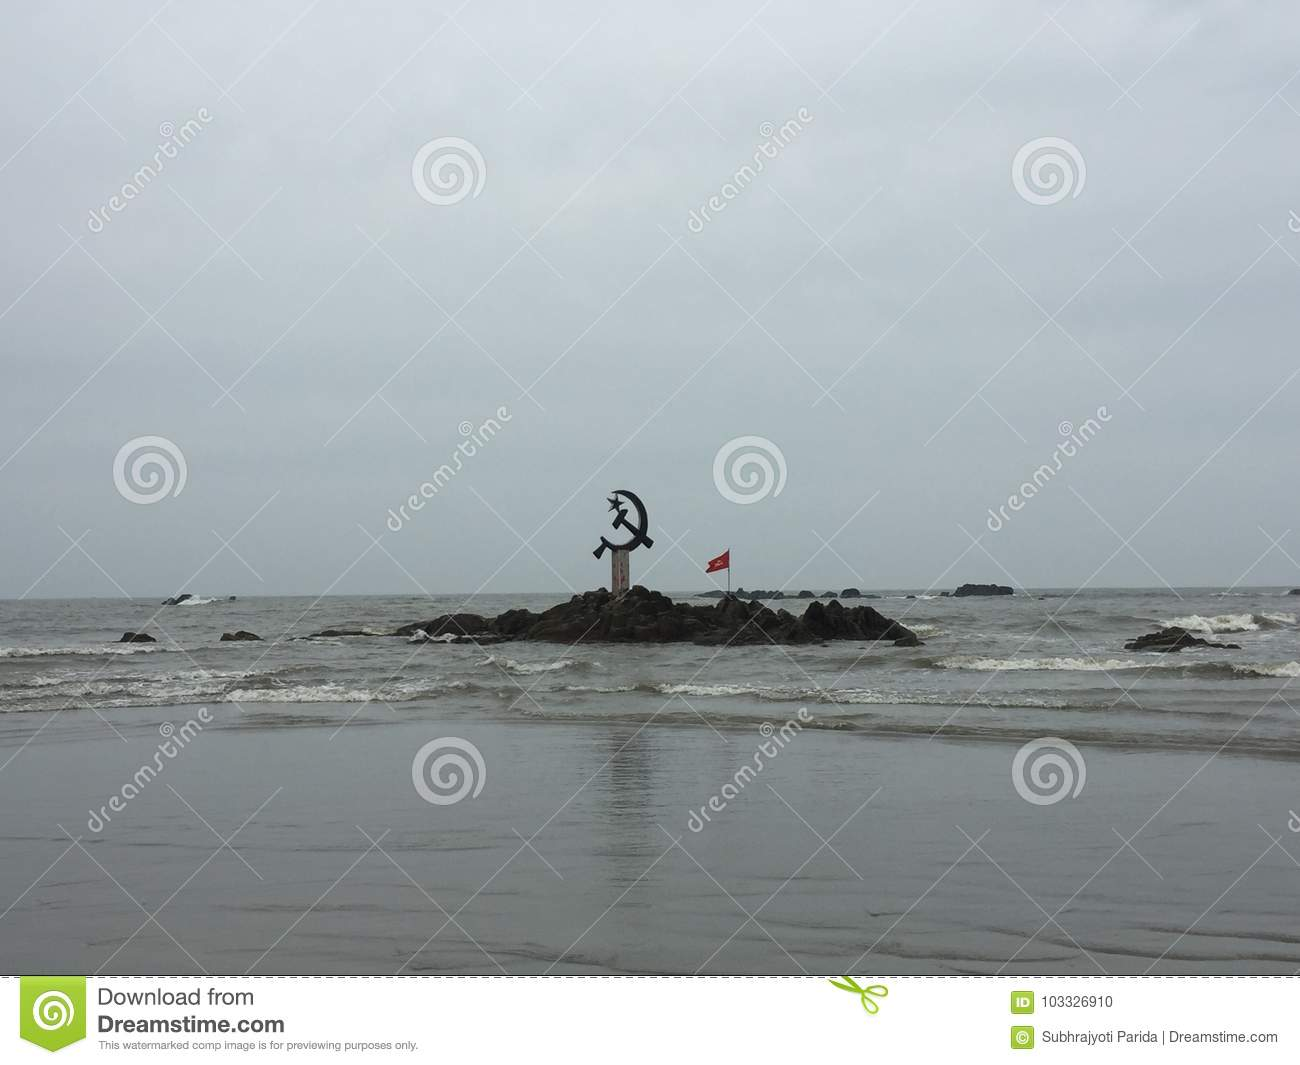 The inverted hammer and sickle symbol of communism off the coast the inverted hammer and sickle symbol of communism off the coast of kunoor biocorpaavc Gallery